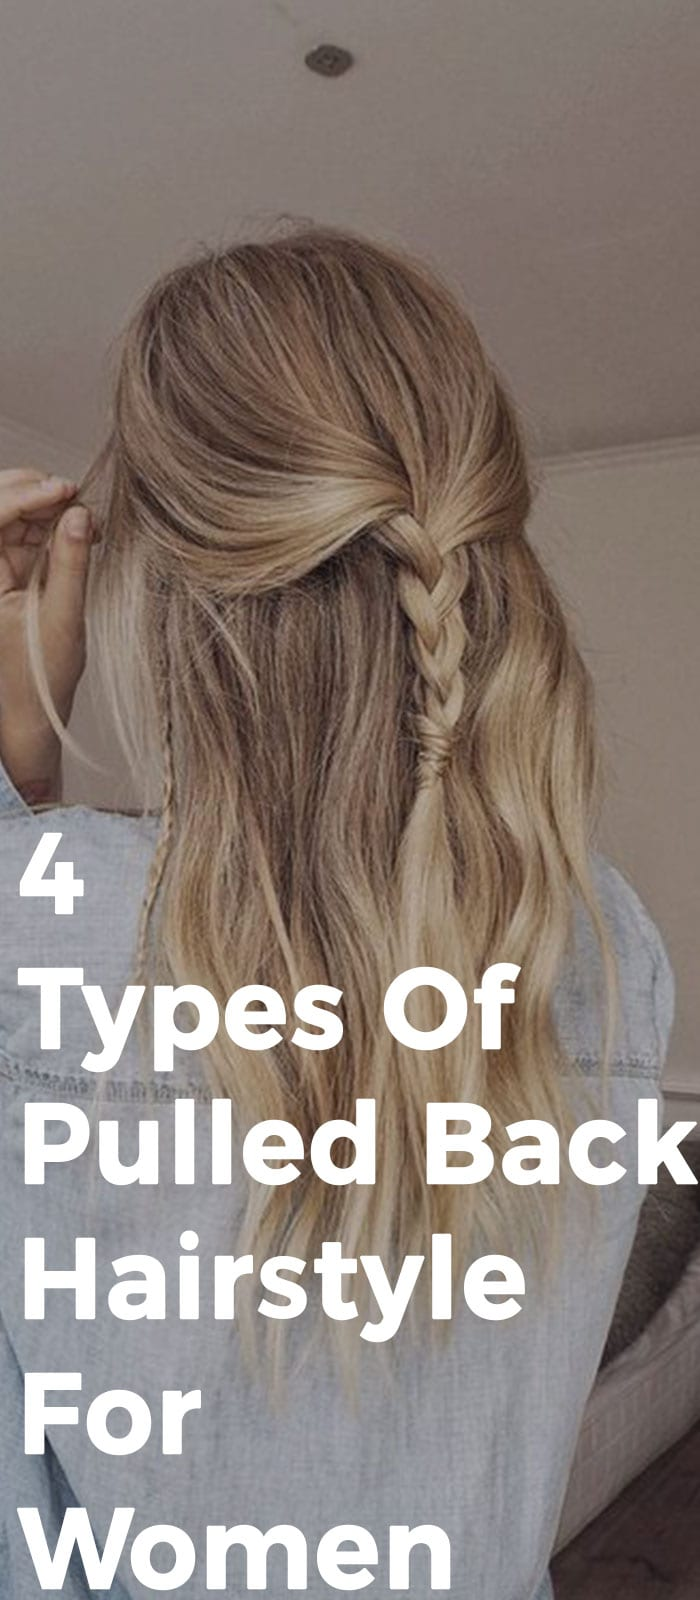 4 Types Of Pulled Back Hairstyle For Women